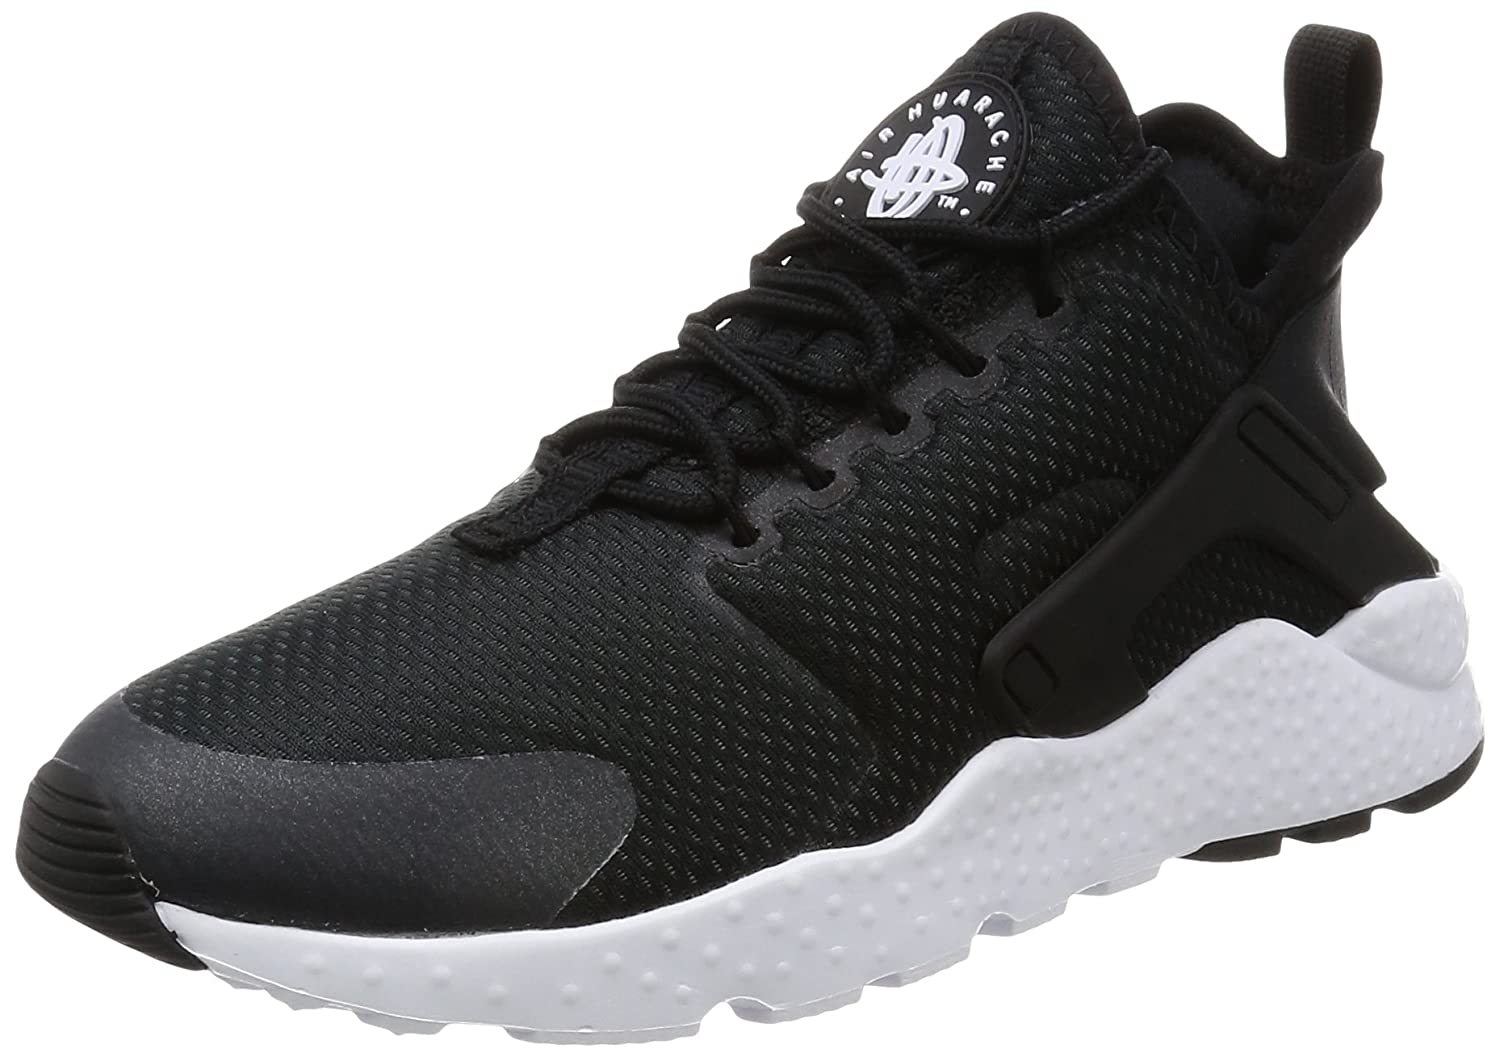 brand new abd4d 8fccb Nike Women s s Air Huarache Run Ultra Trainers  Amazon.co.uk  Shoes   Bags